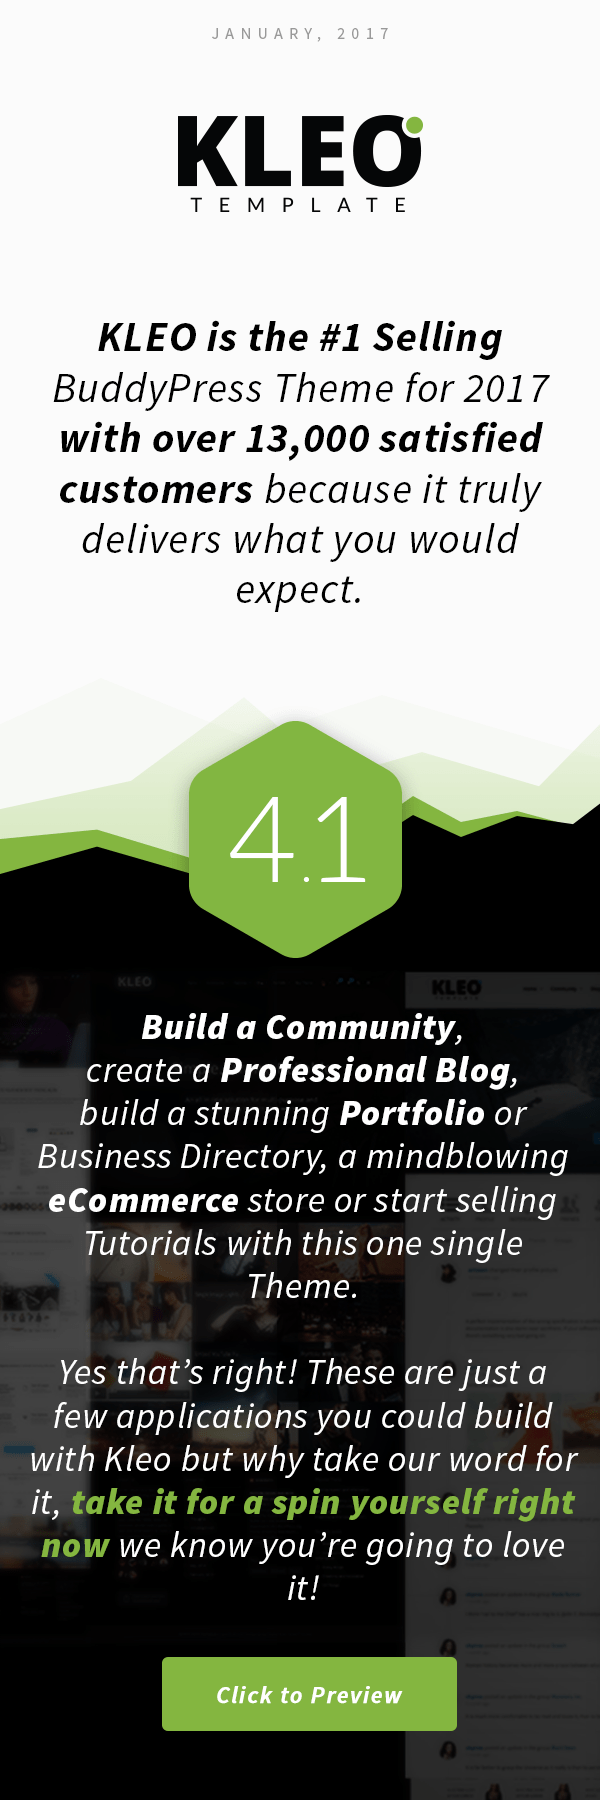 KLEO – Pro Community Focused, Multi-Purpose BuddyPress ...